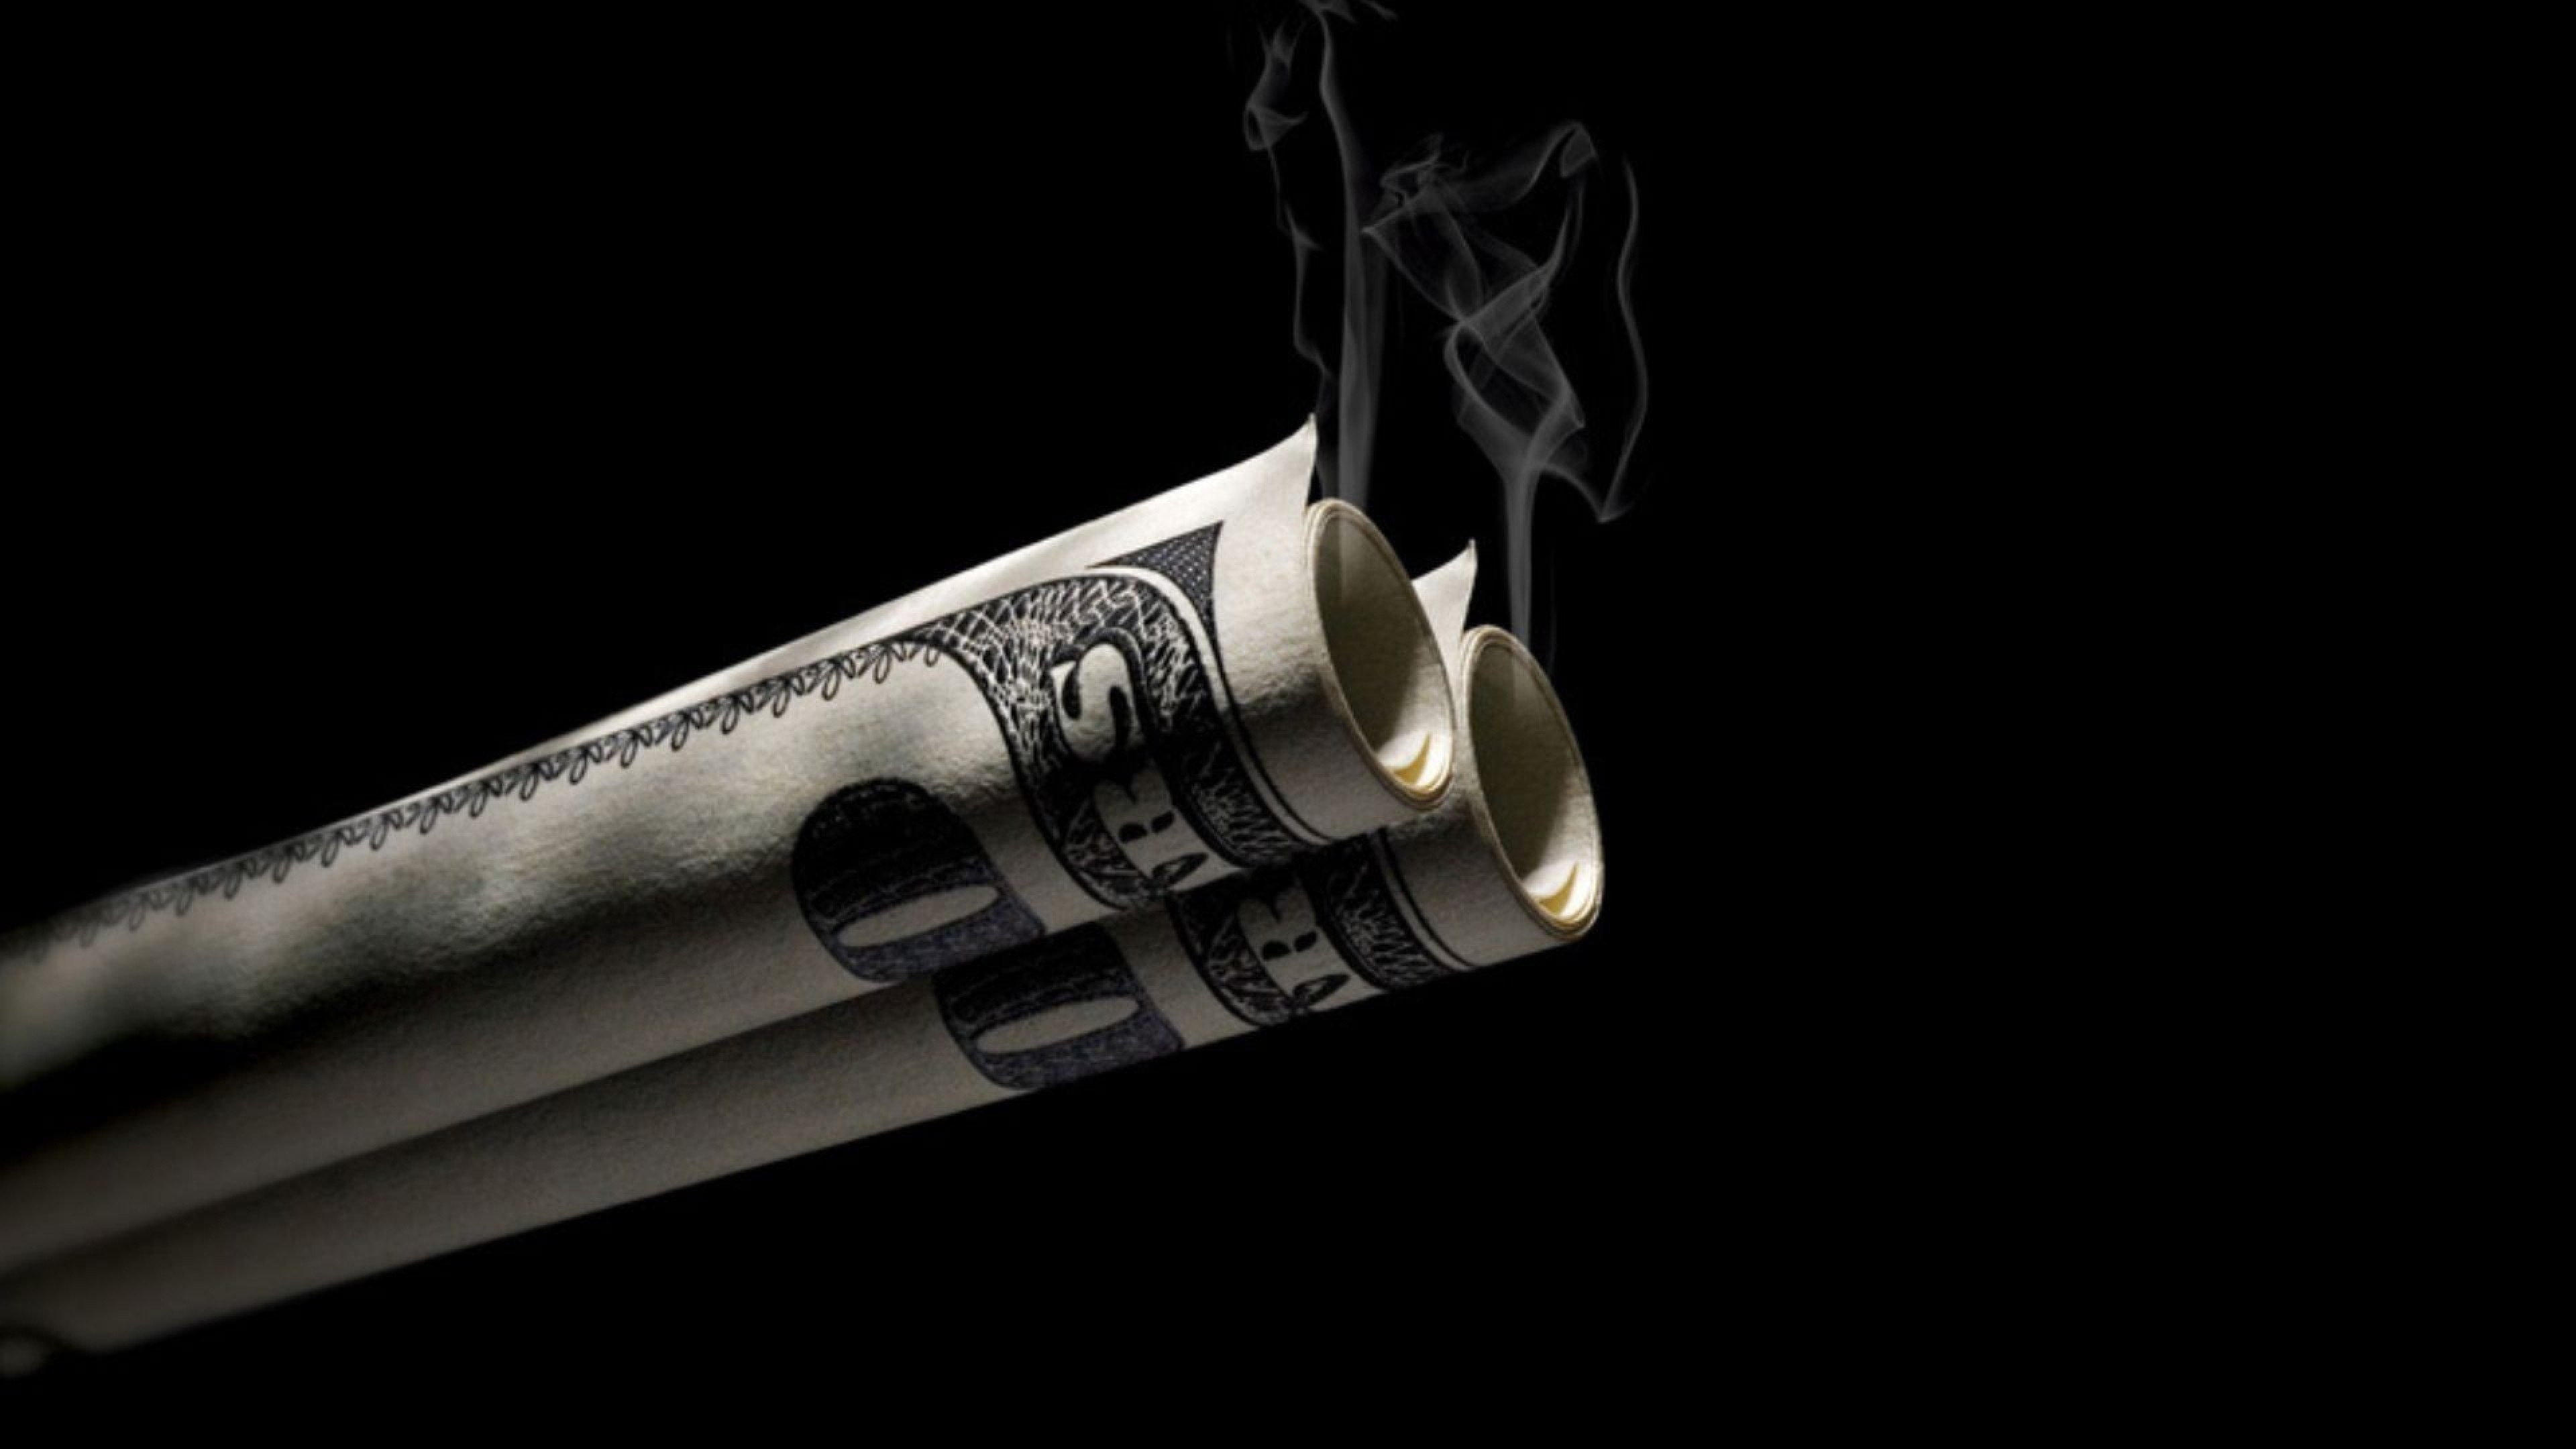 3840x2160 Preview wallpaper dollar, bills, smoke, background